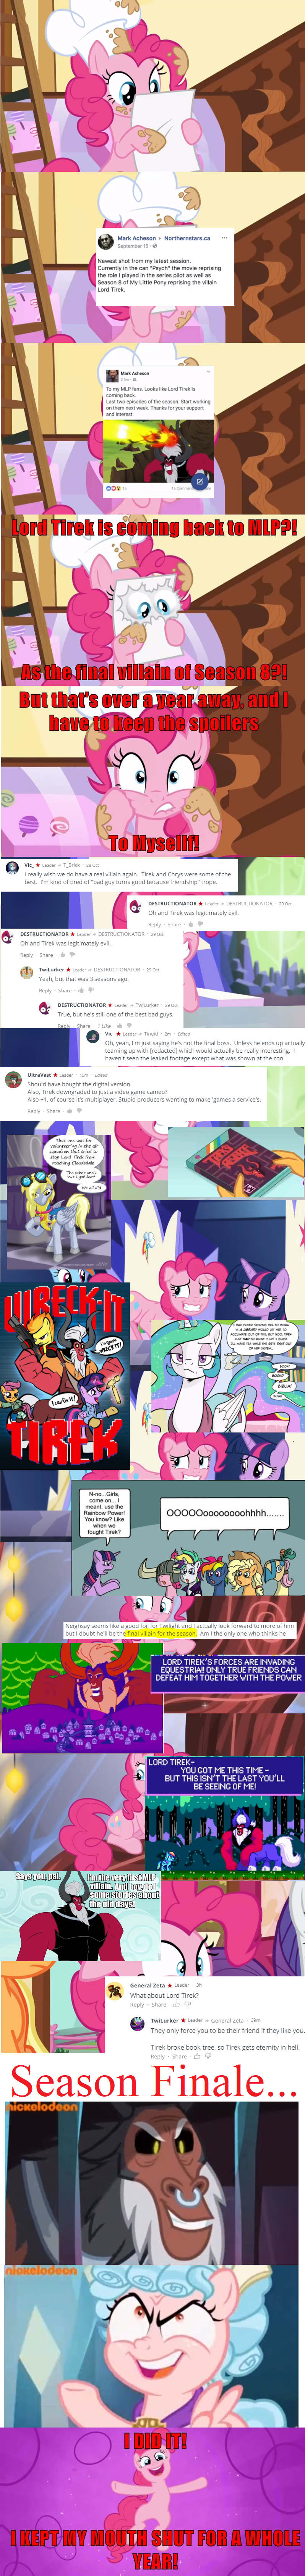 the one where pinkie pie knows applejack pencil twitter equestria girls spitfire derpy hooves twilight sparkle tirek pinkie pie cozy glow texas uber alles rarity Hasbro school raze princess celestia dan232323 sunset shimmer wreck-it ralph fluttershy Scootaloo rainbow dash - 9225321728